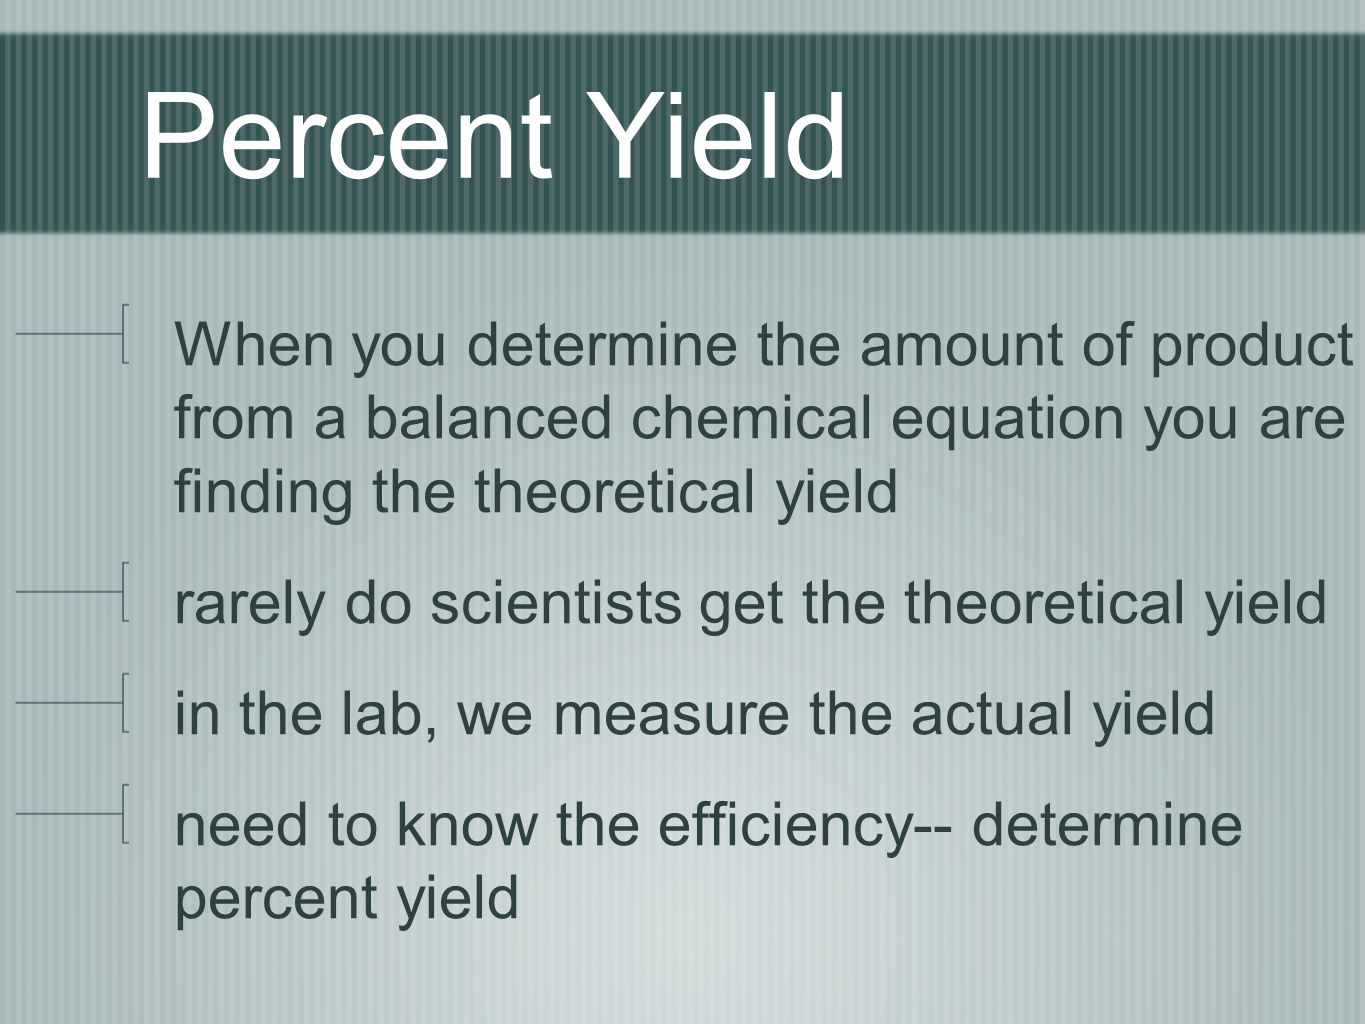 3 Percent Yield When You Determine  010007050_19fd6421d2f4dadc66672ed6f2fbe52eeg How To Find Percent